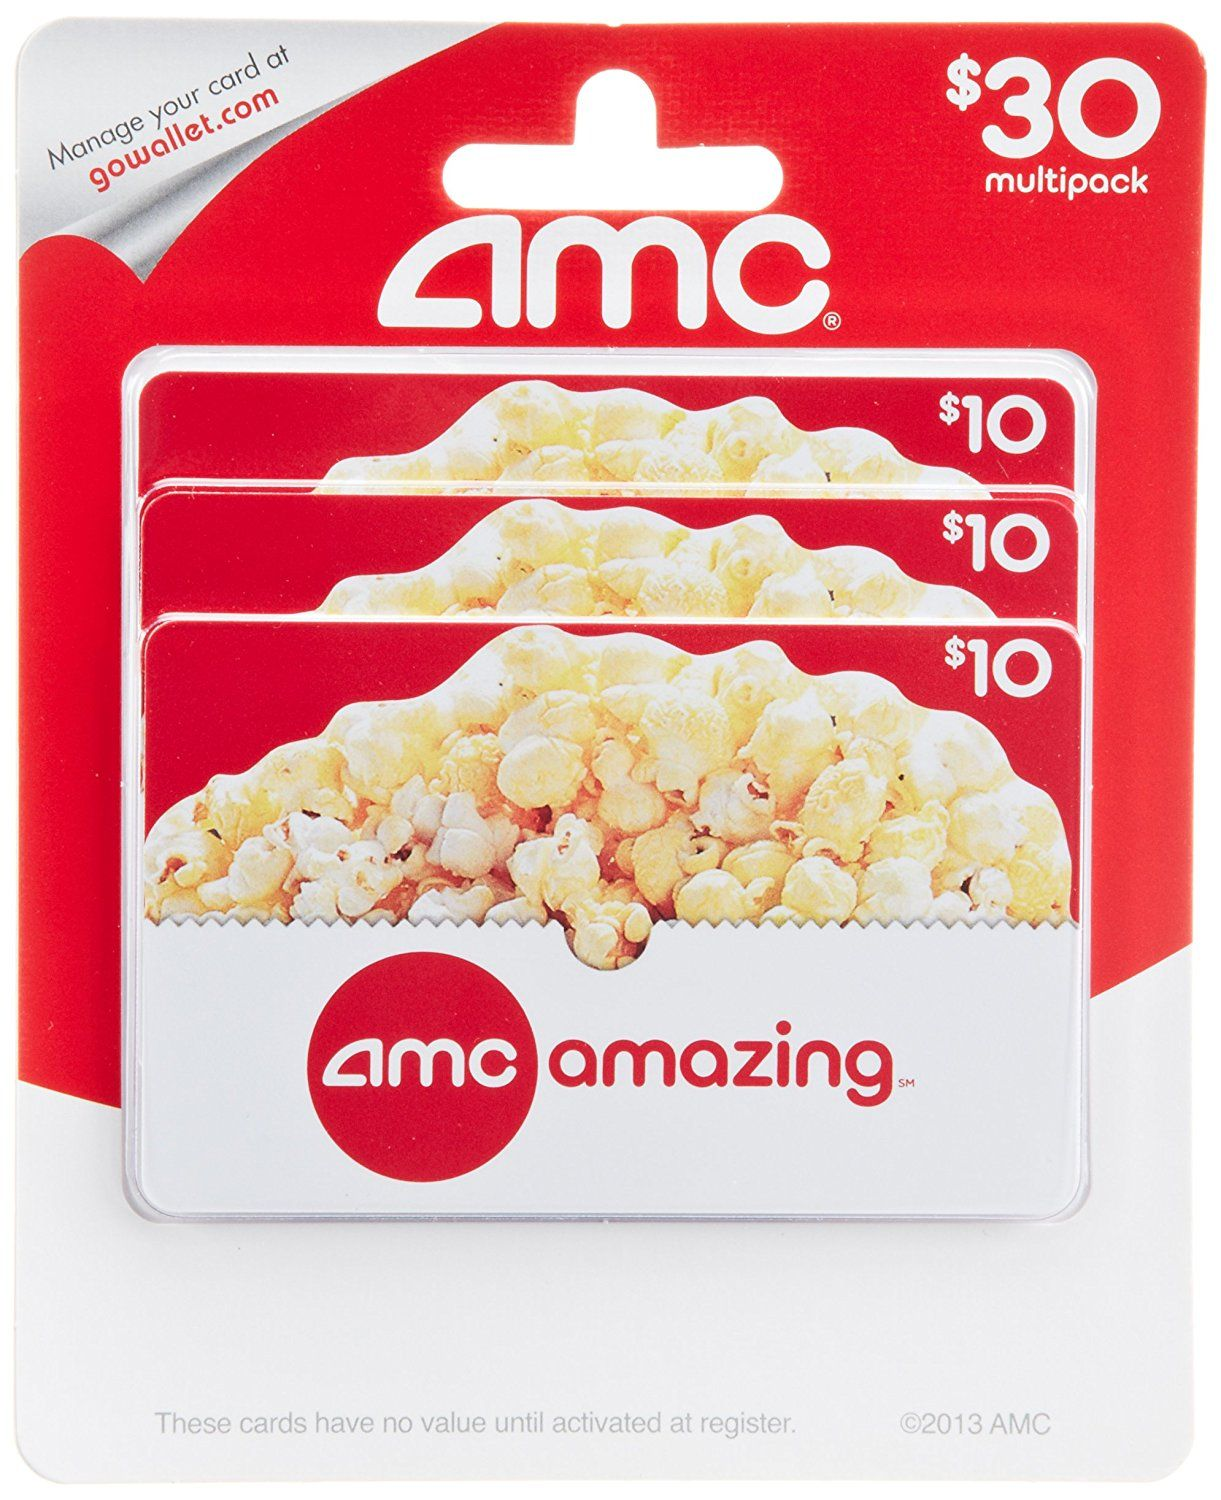 Amc theatre gift cards multipack of 3 additional